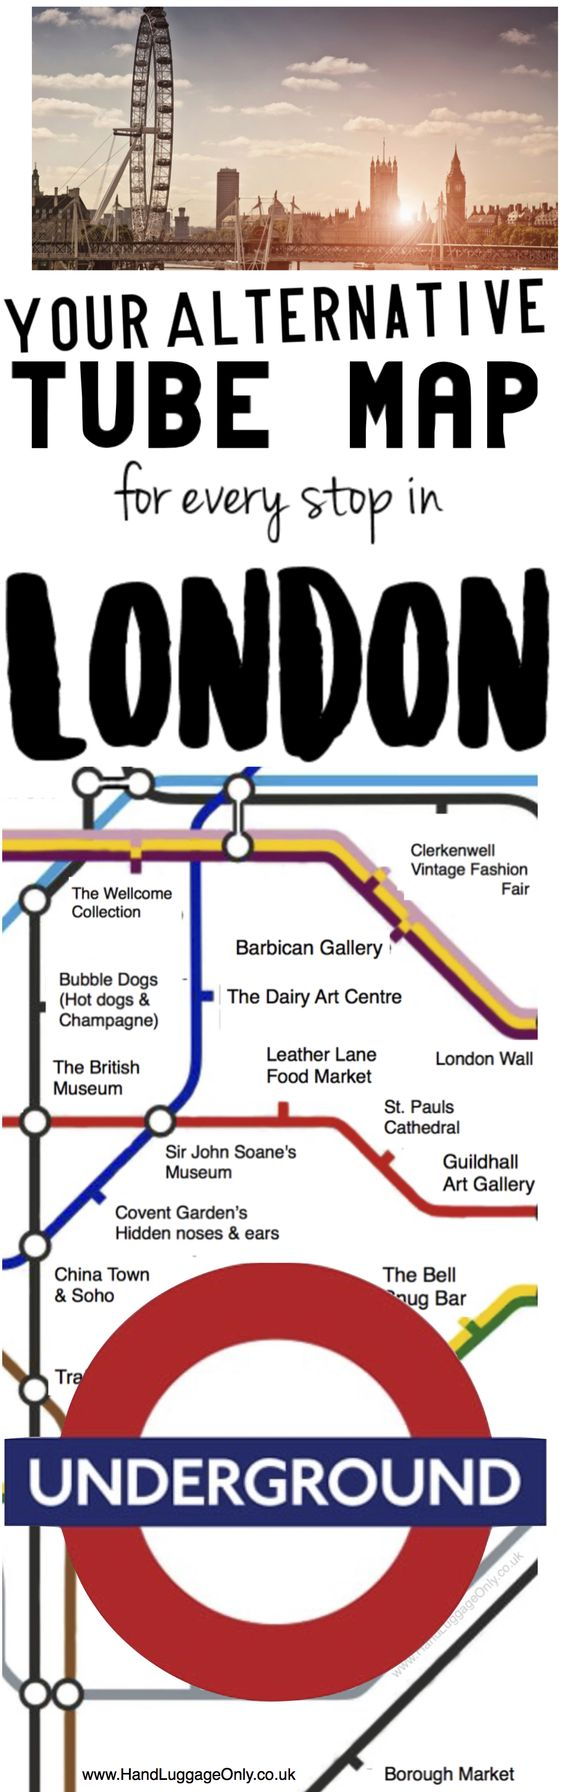 THIS ALTERNATIVE LONDON UNDERGROUND MAP SHOWS YOU WHAT TO SEE AT EVERY TUBE STOP IN CENTRAL LONDON London is a pretty epic place, though its probably expected that I'd say that seeing as it's my home but its the actual truth. 🙂 Our wonderful city is buzzing with so many amazing sights to explore which are particularly easy to get to, especially with hundreds of tube stops that are dotted across London town.